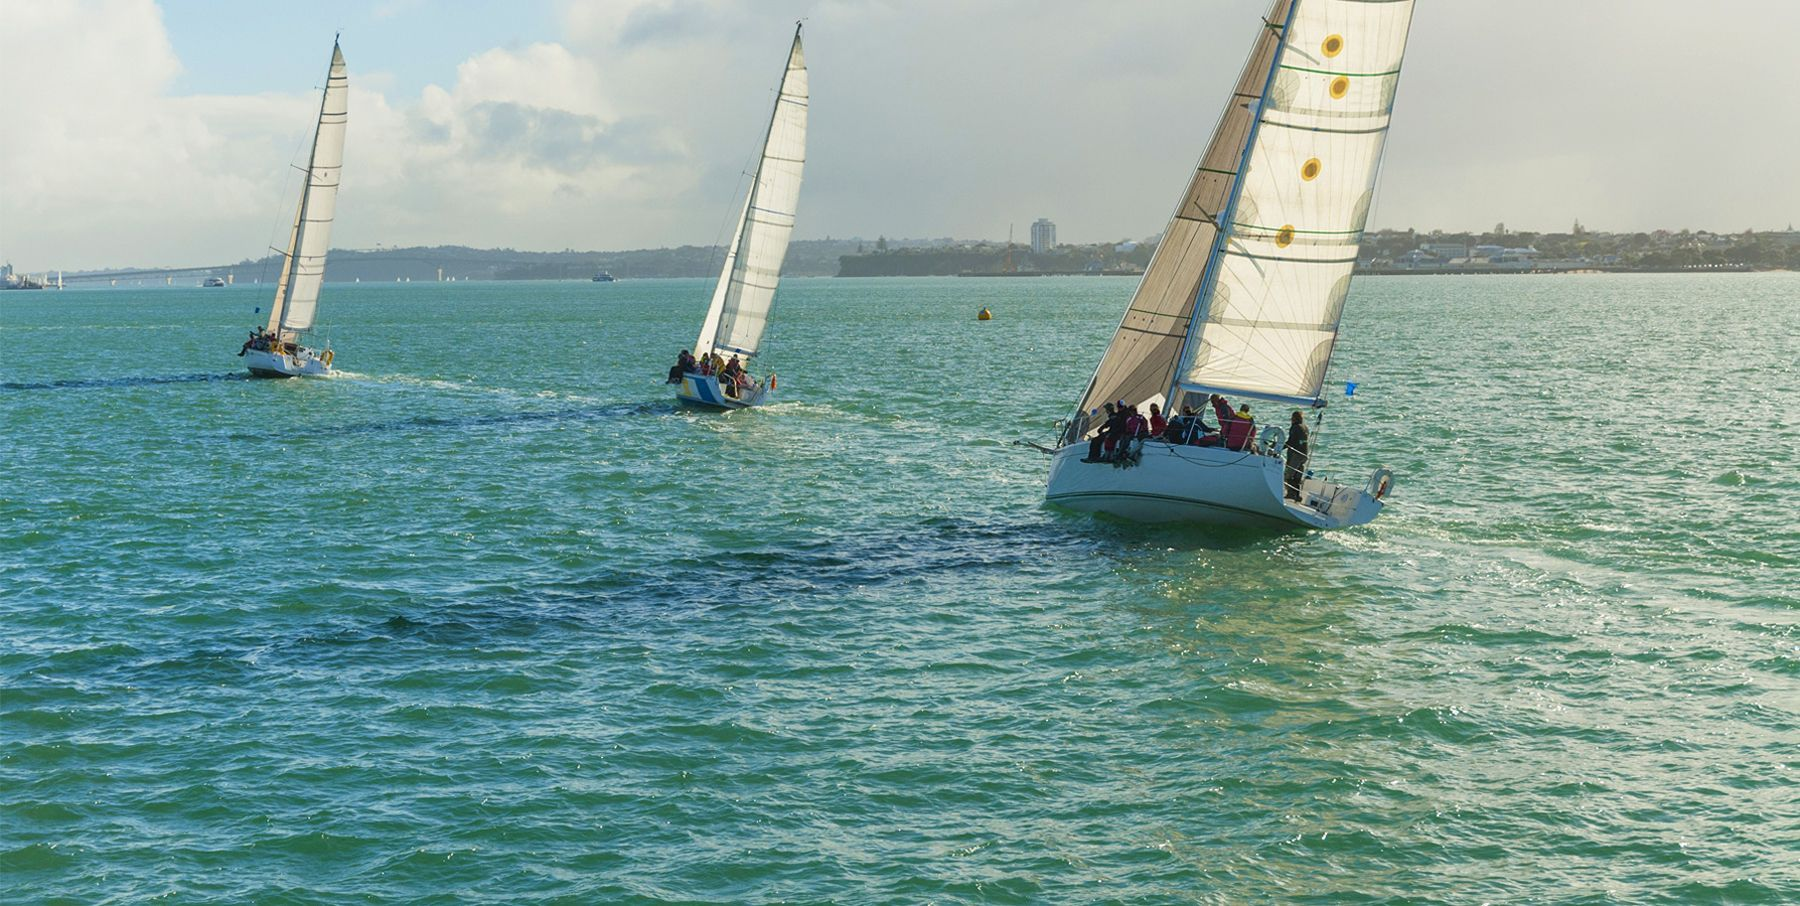 Flagship sailing school learn to sail in tampa bay fl